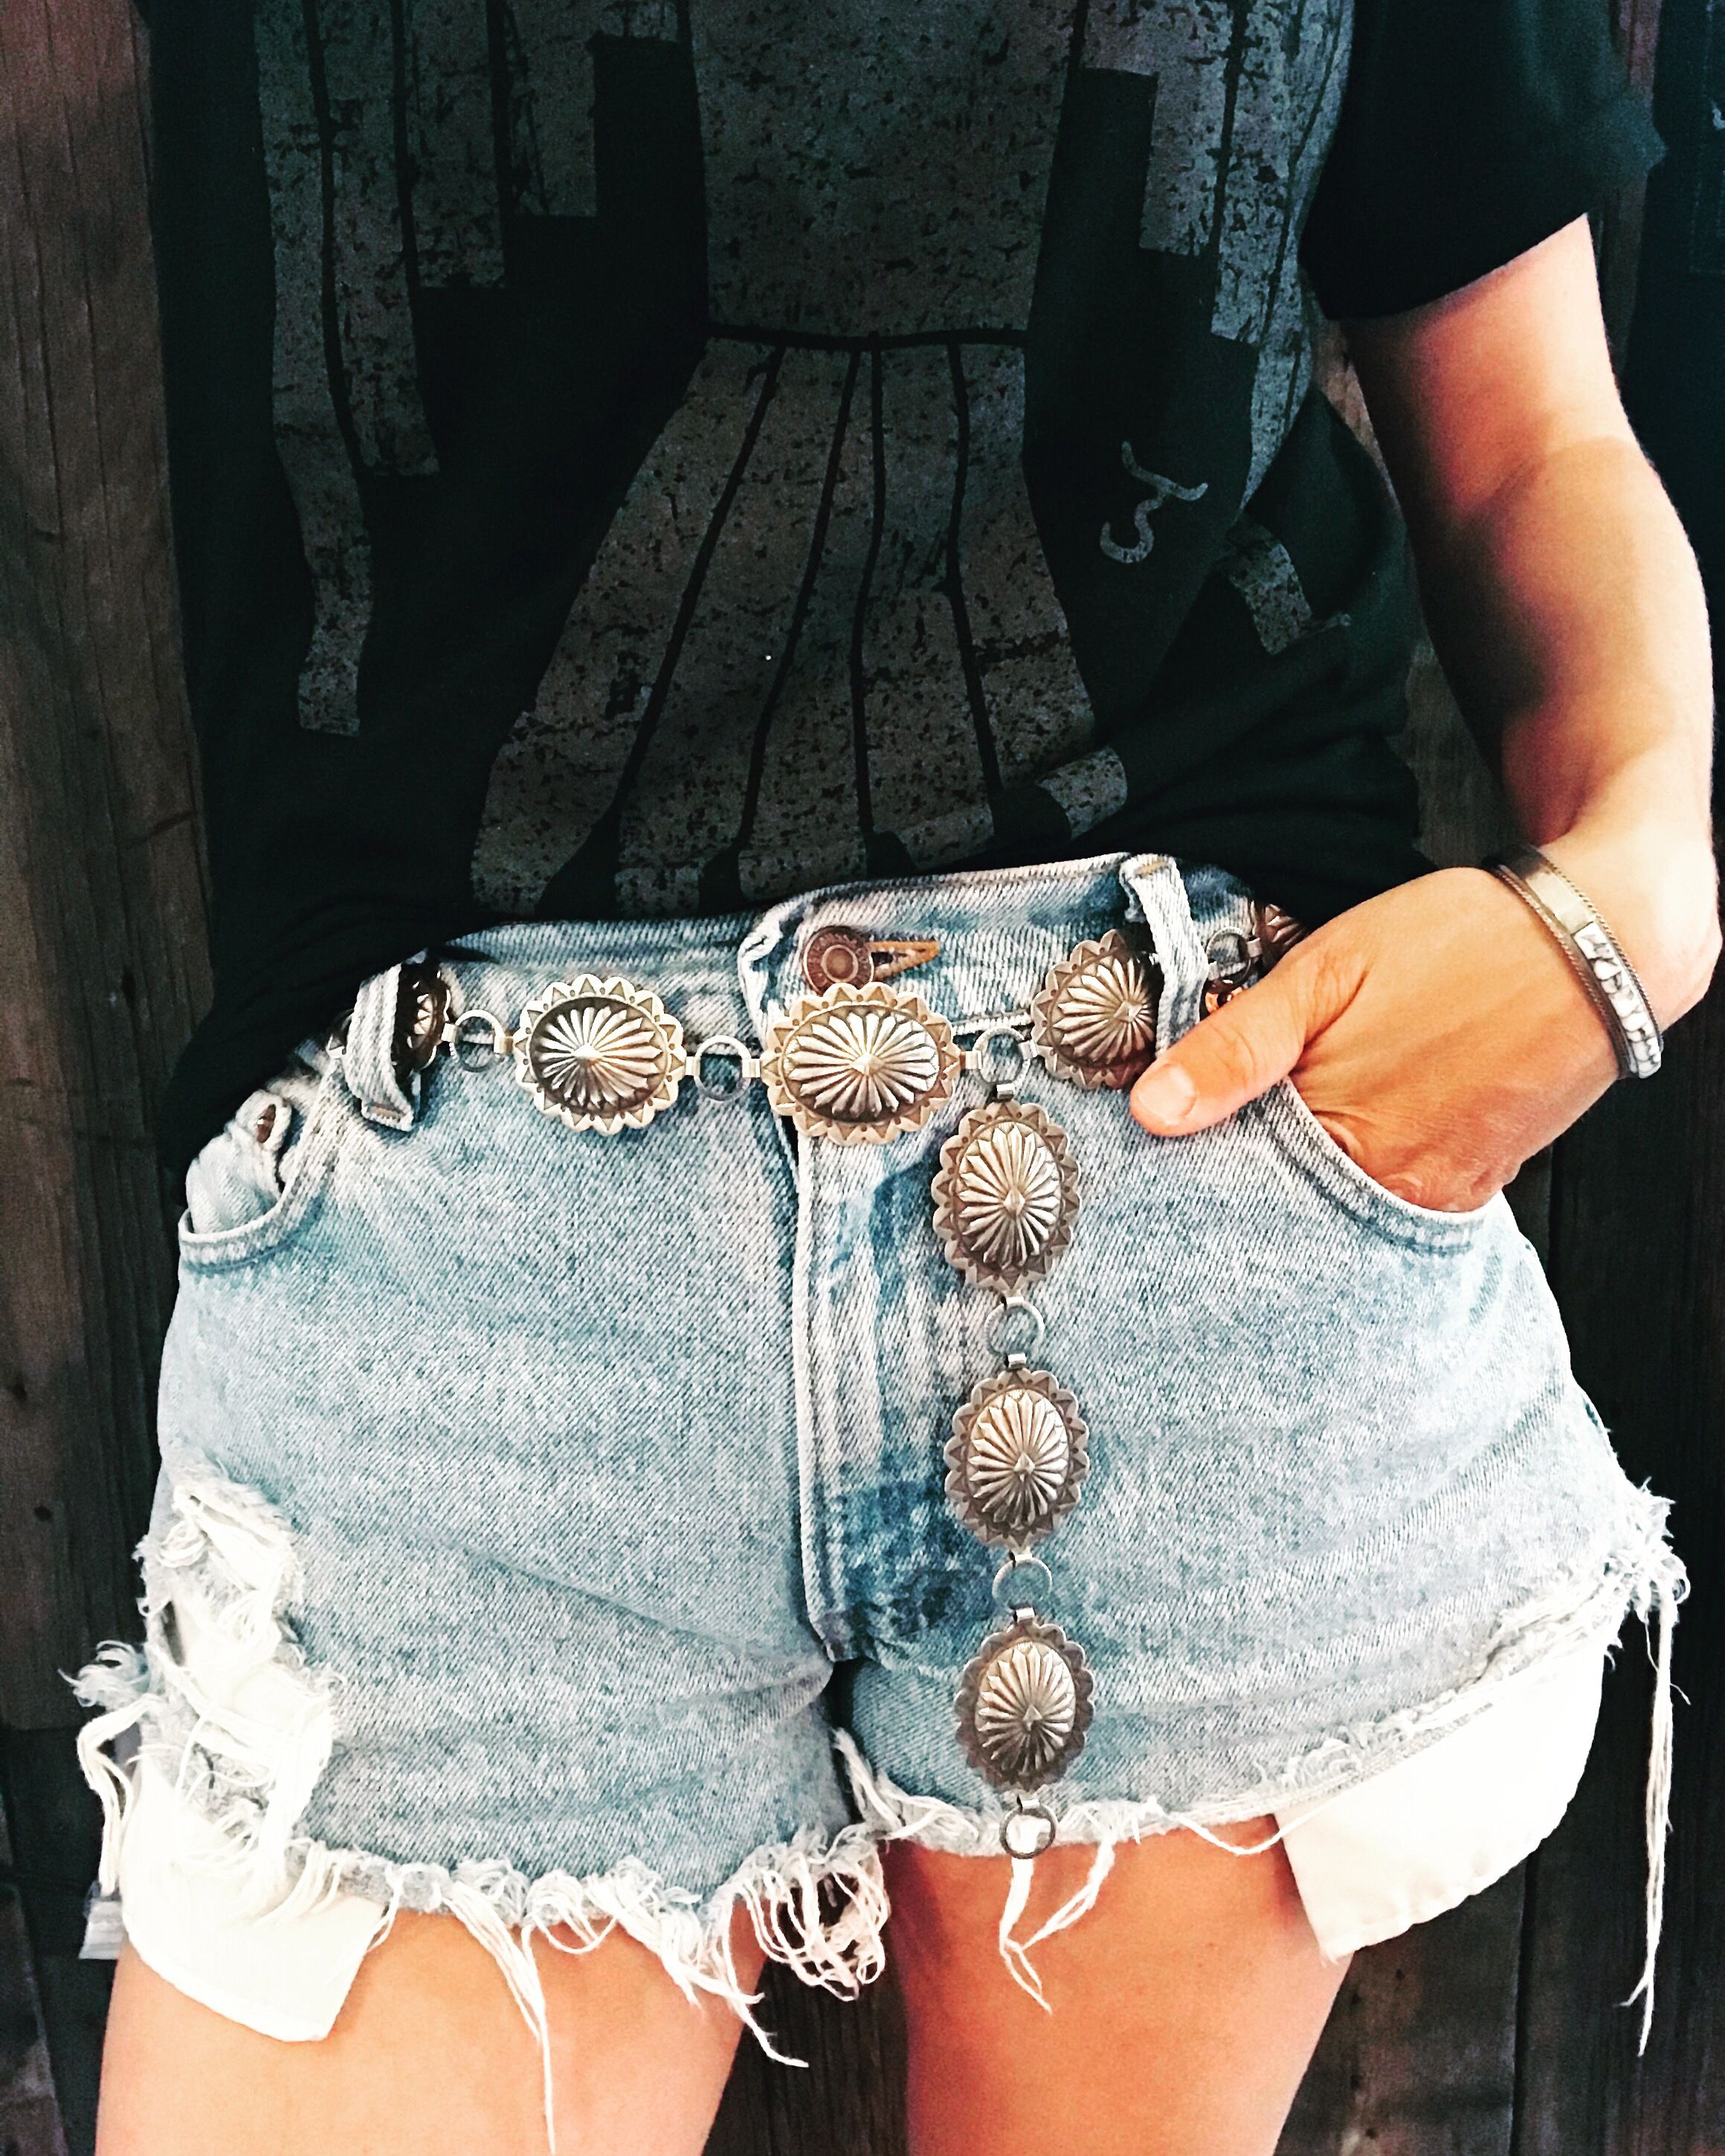 Concho belts have endless styling belts!